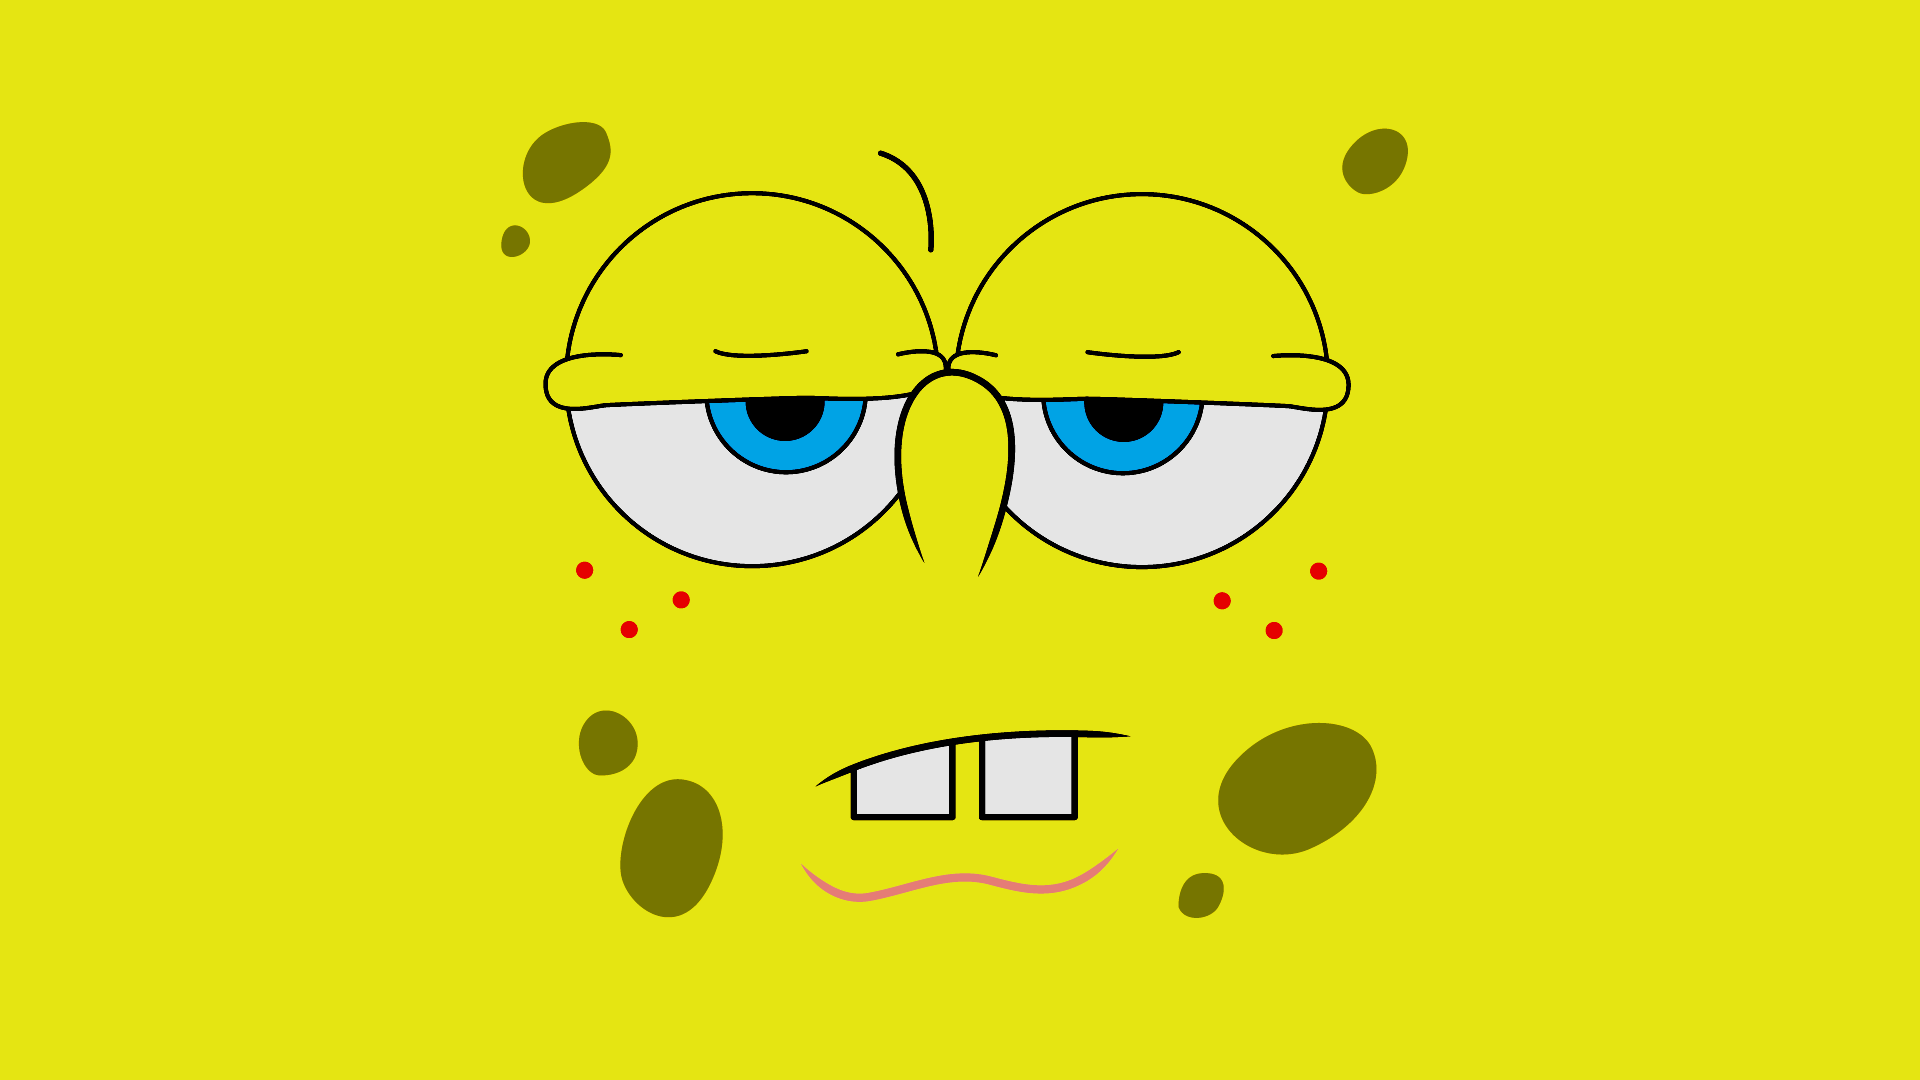 25 Cool SpongeBob SquarePants Wallpapers